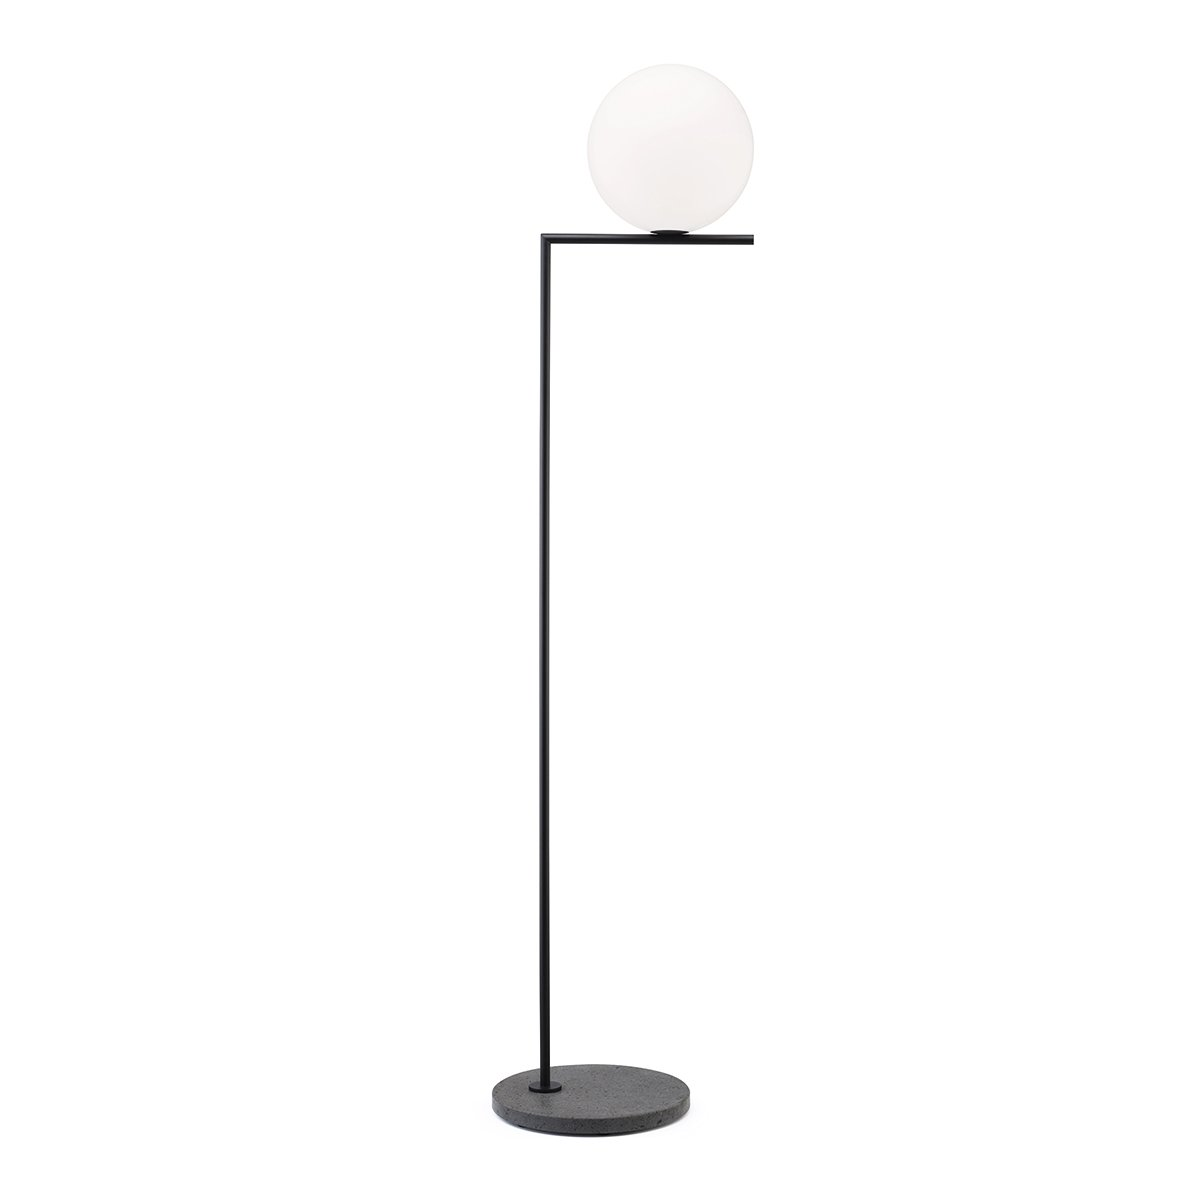 FLOS IC Light Outdoor Vloerlamp F2 - Zwart Aluminium